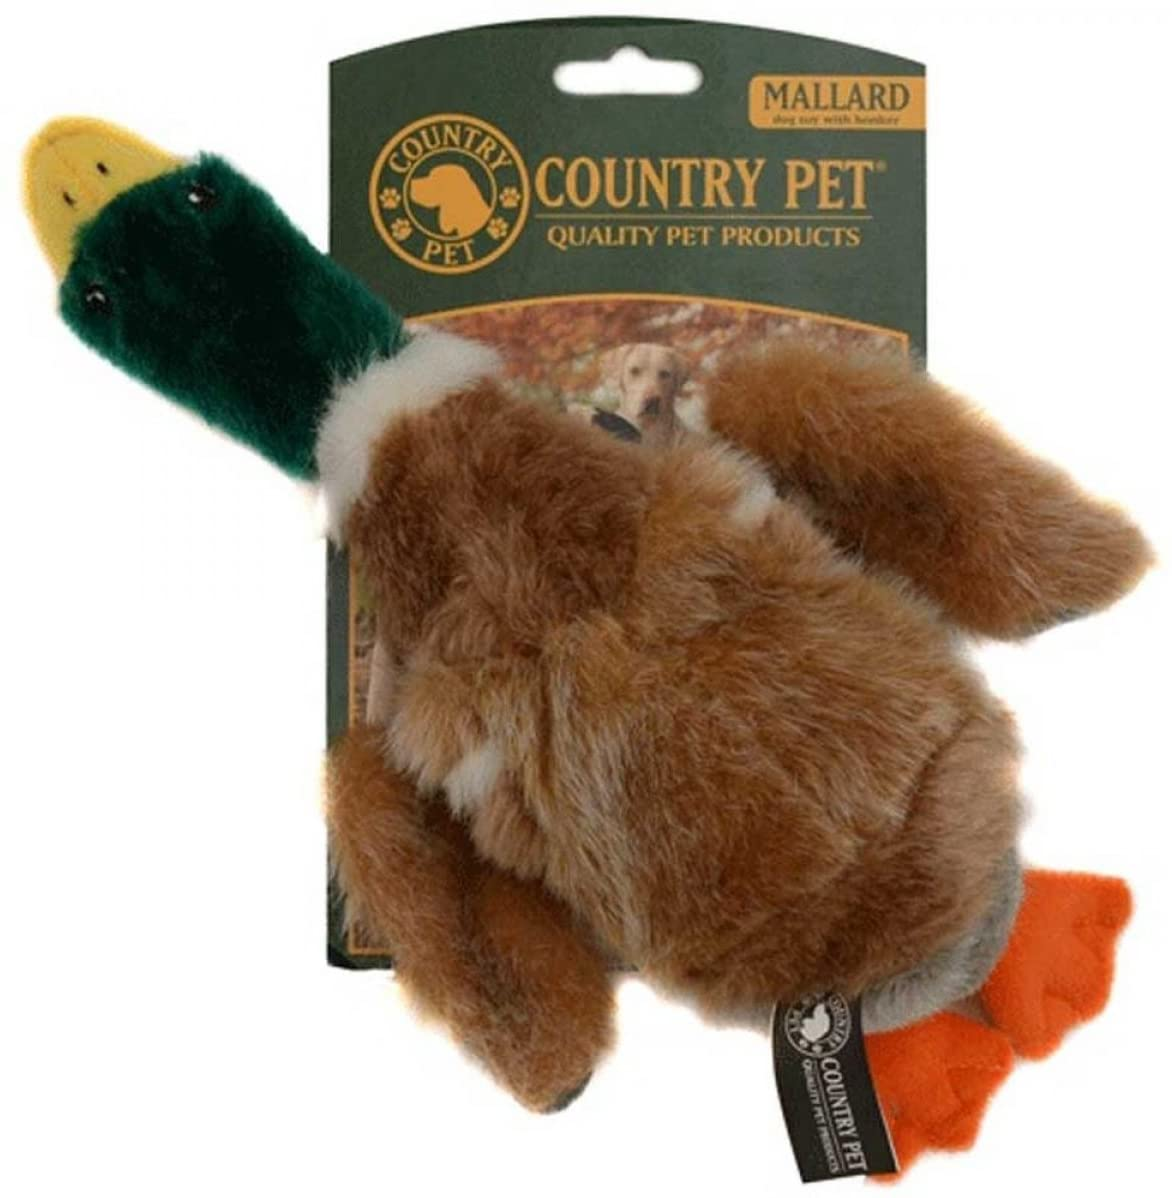 Country Pet Dog Toy - Mallard Duck Large